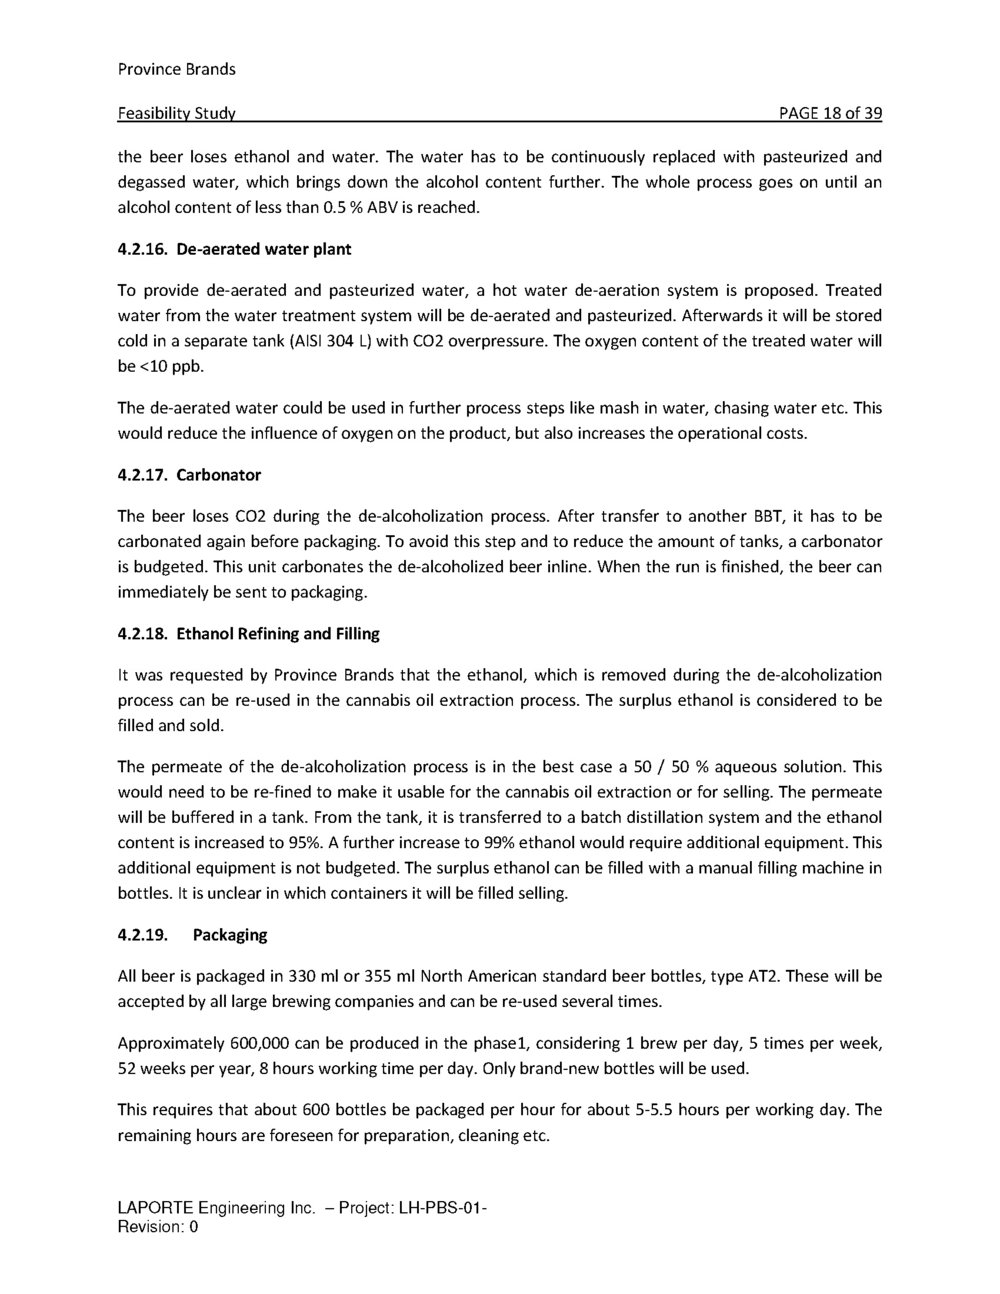 LH-PBS-01_Feasibility Study Report_01_Page_18.jpg